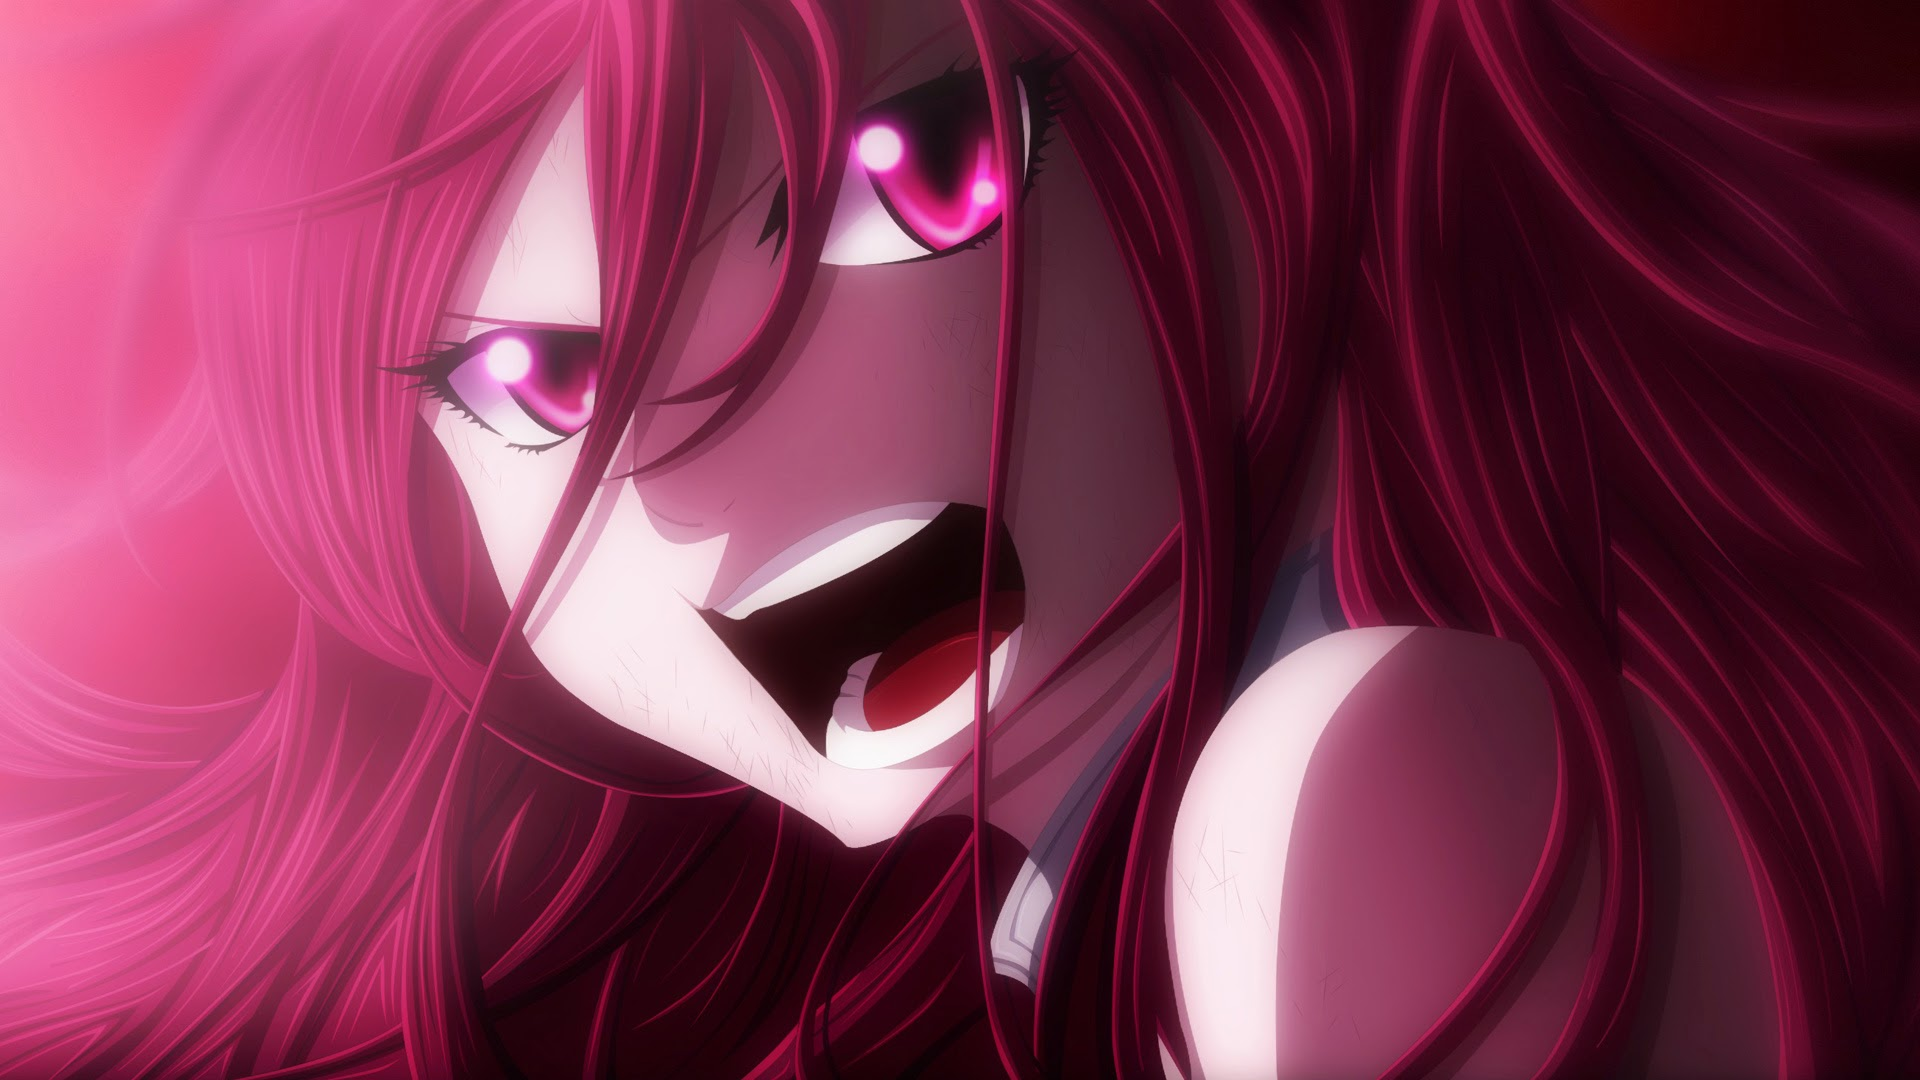 fairy tail erza scarlet anime girl hd wallpaper 1920x1080